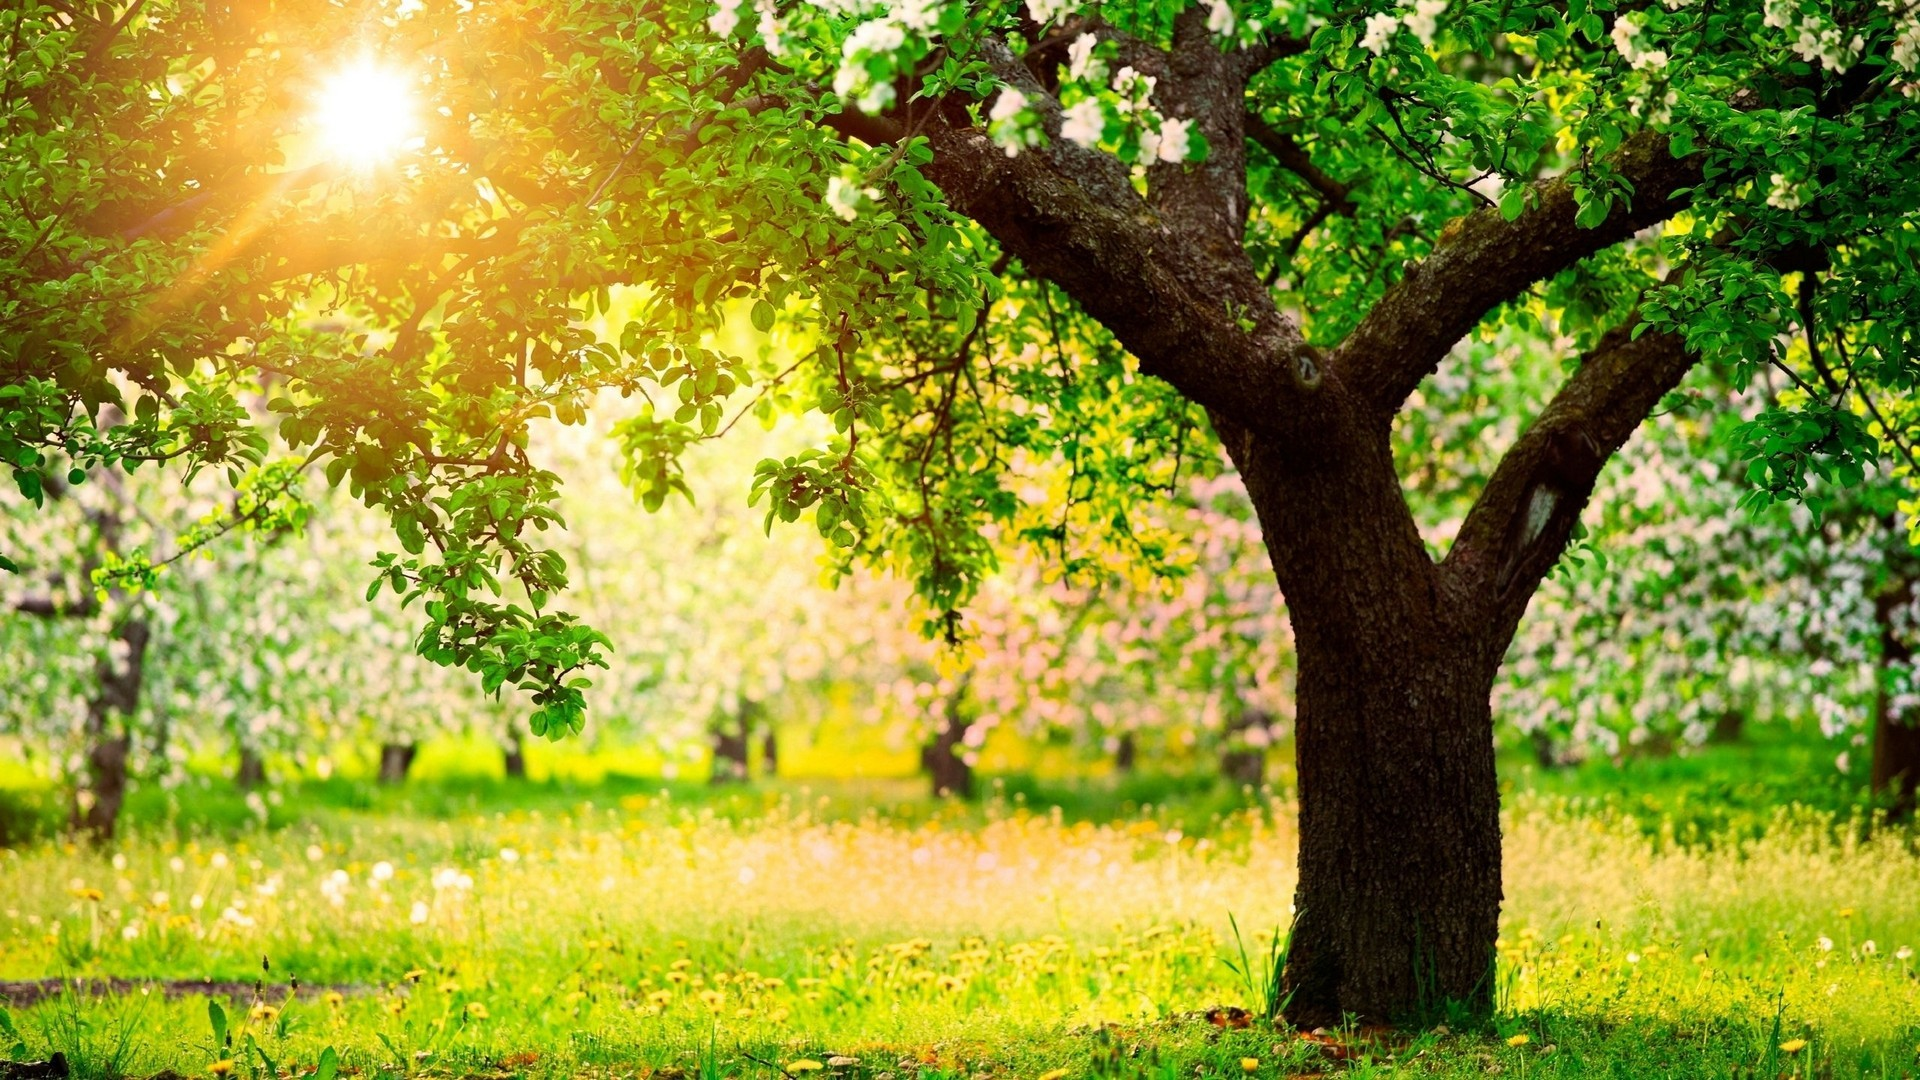 Apple Tree Wallpaper 53 Images